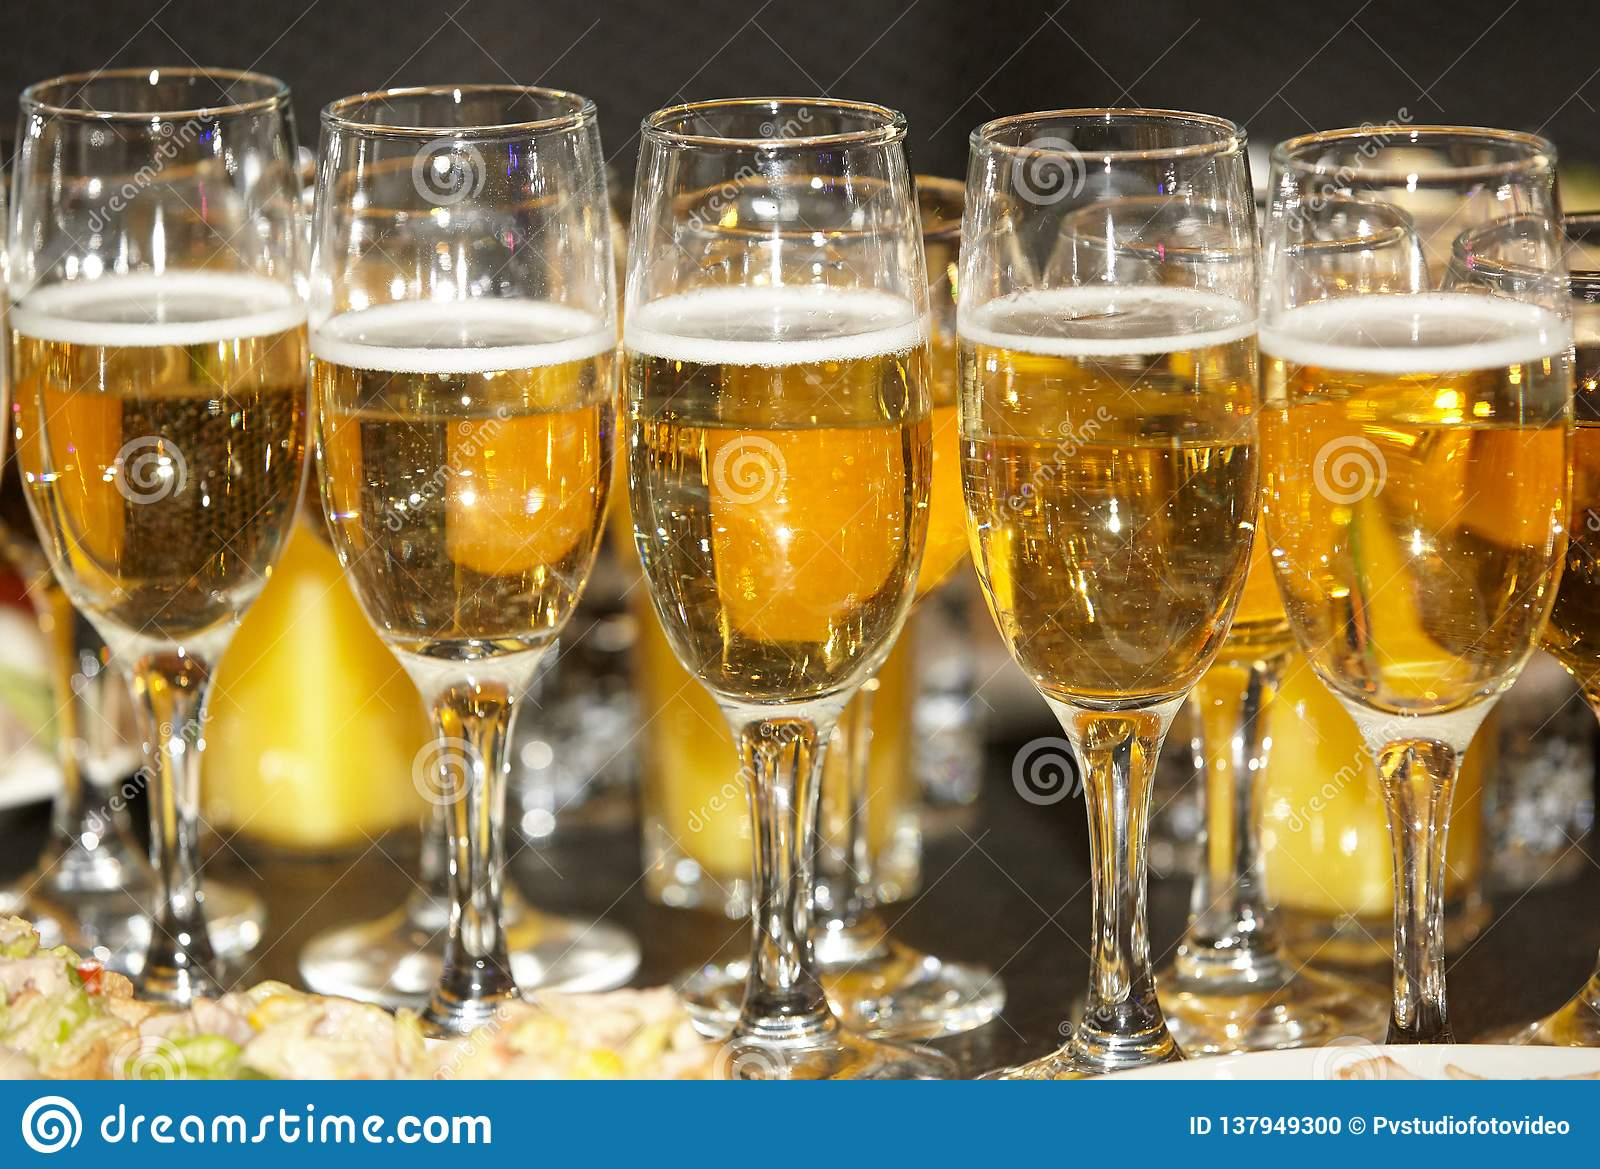 Glasses with champagne or wine of gold color